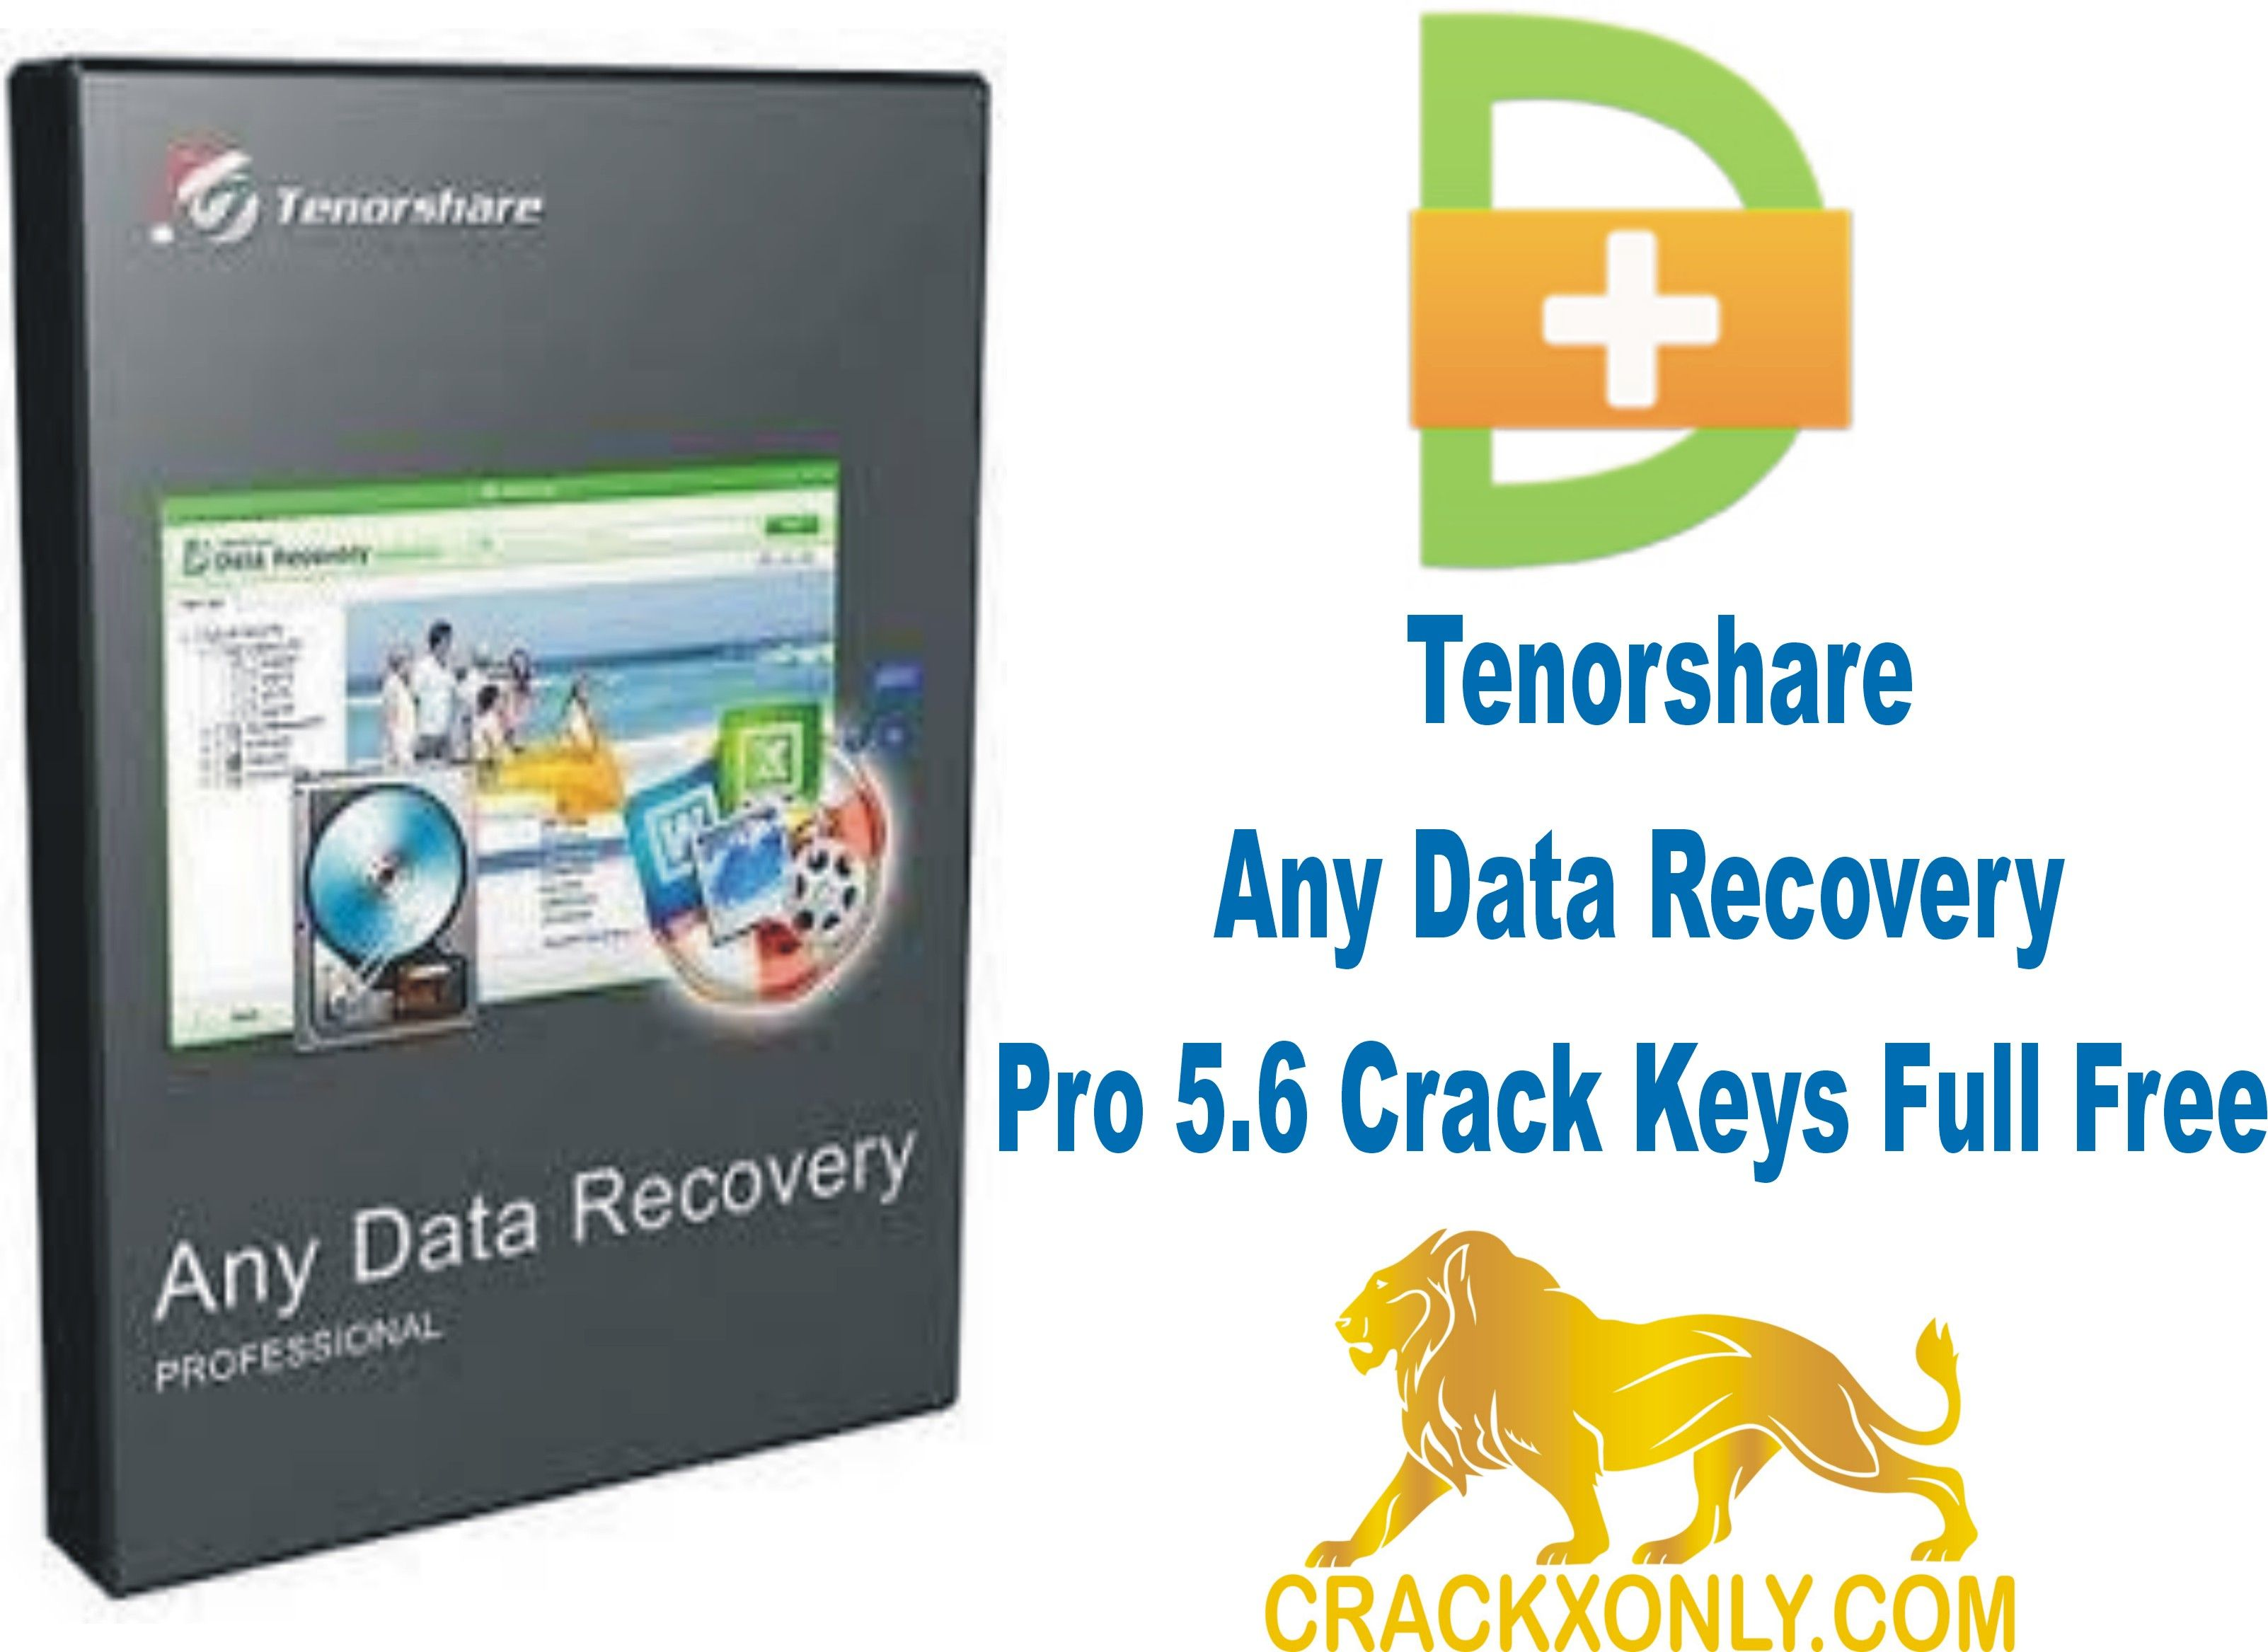 Tenorshare Any Data Recovery Pro free download free version - bestfup